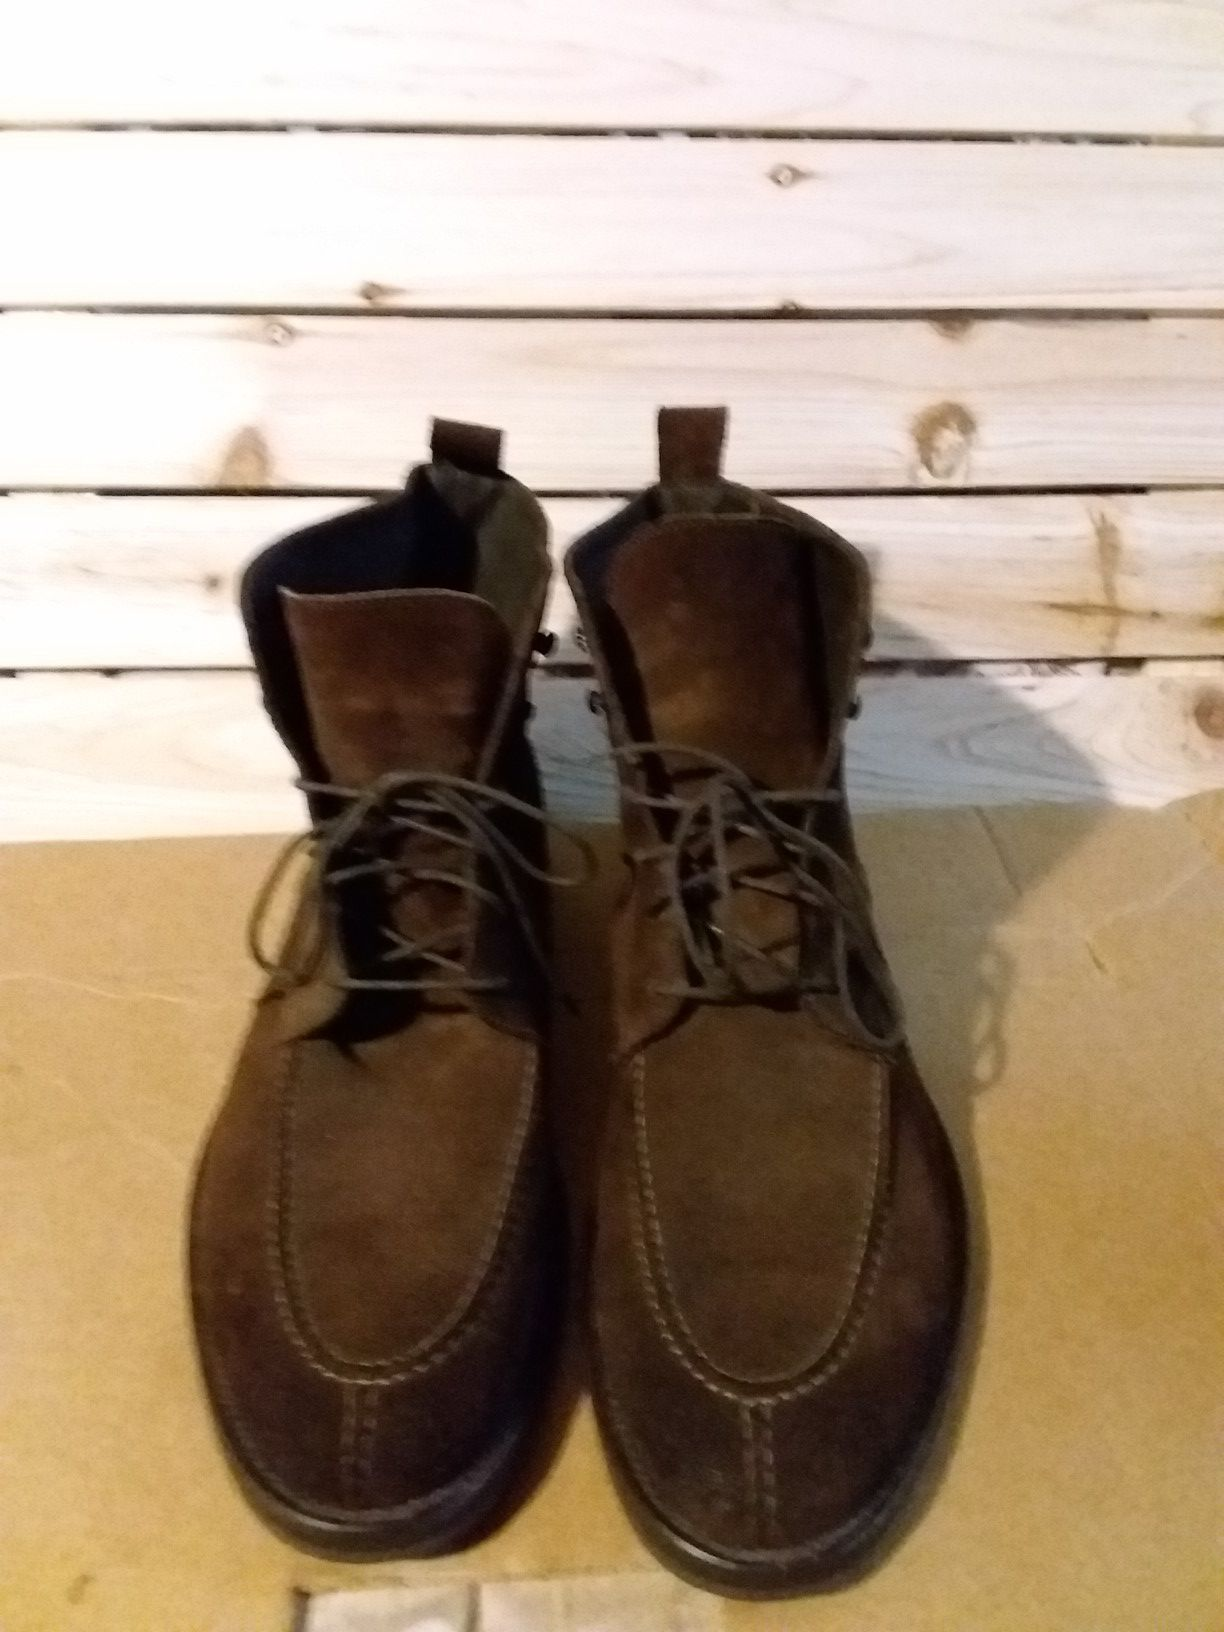 To Boot New York (lace-up boots)